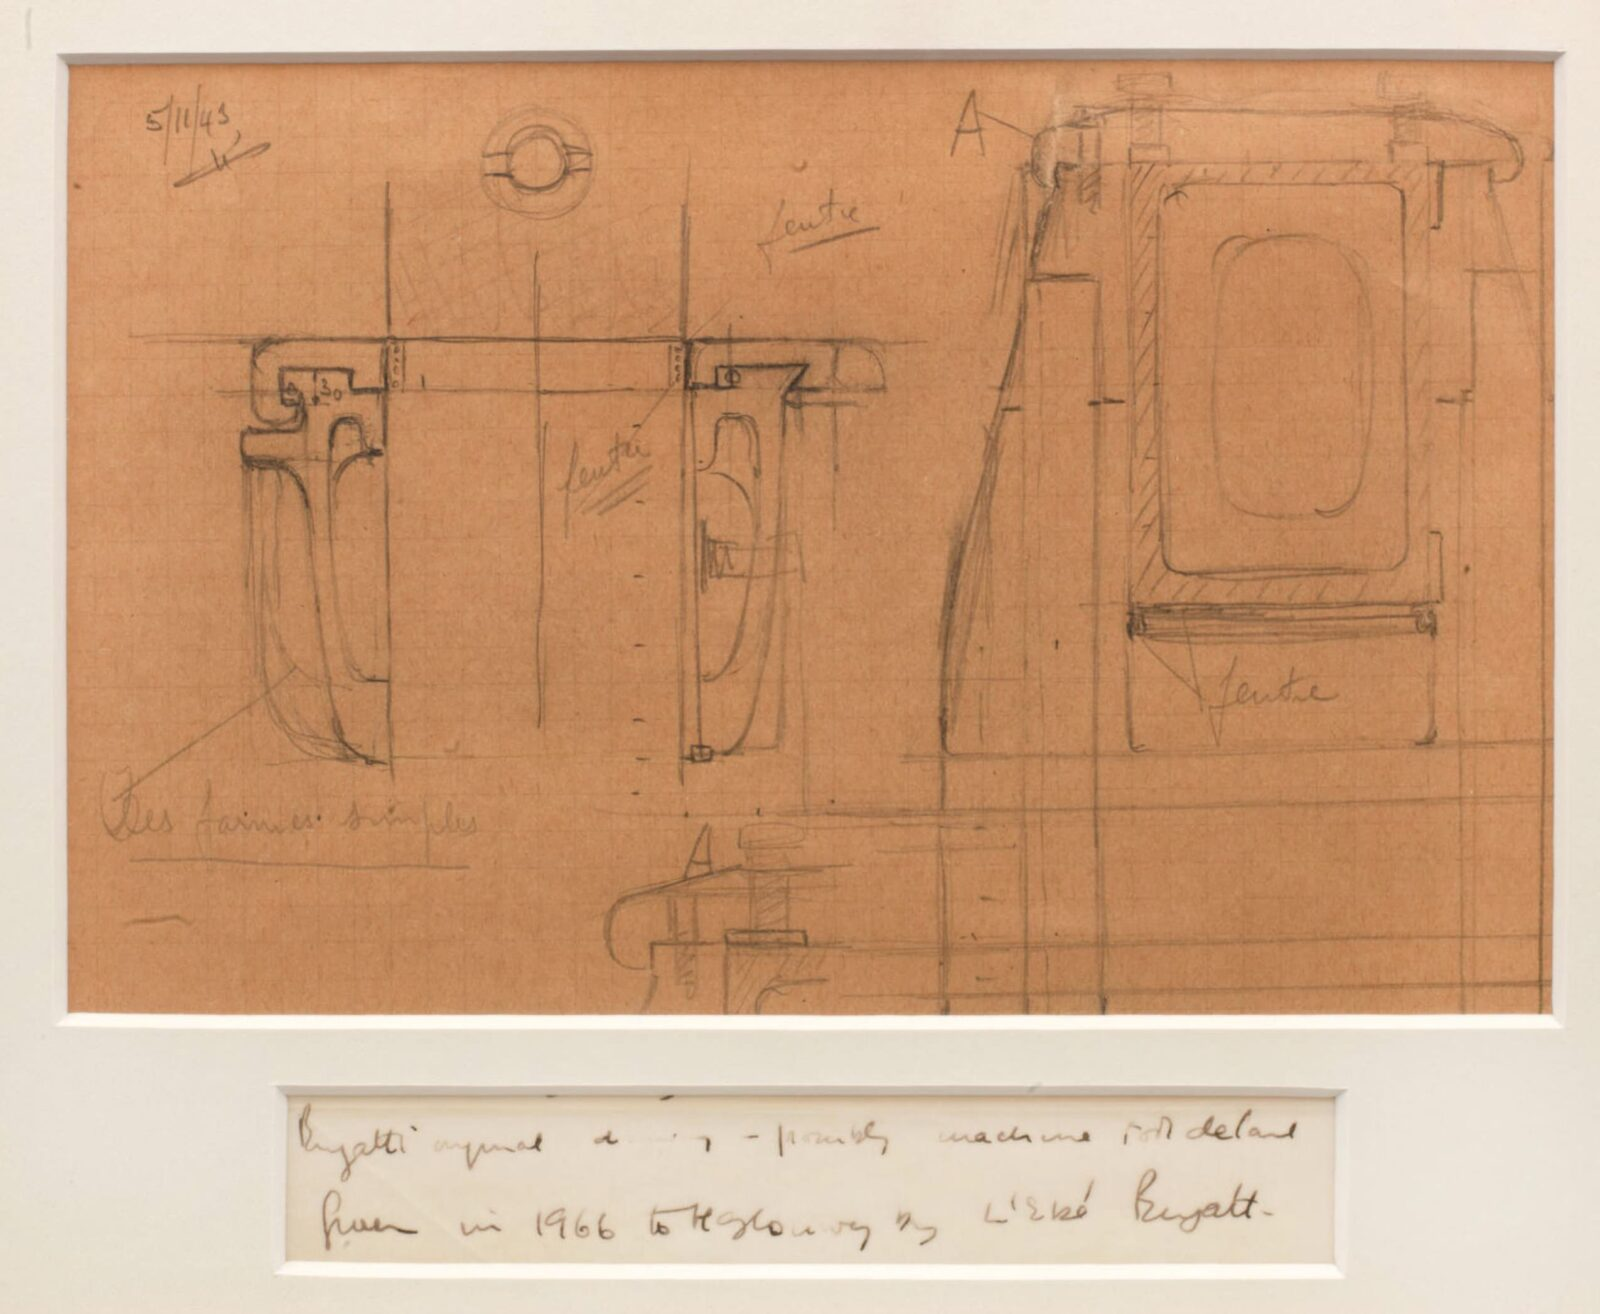 A Technical Drawing By Ettore Bugatti